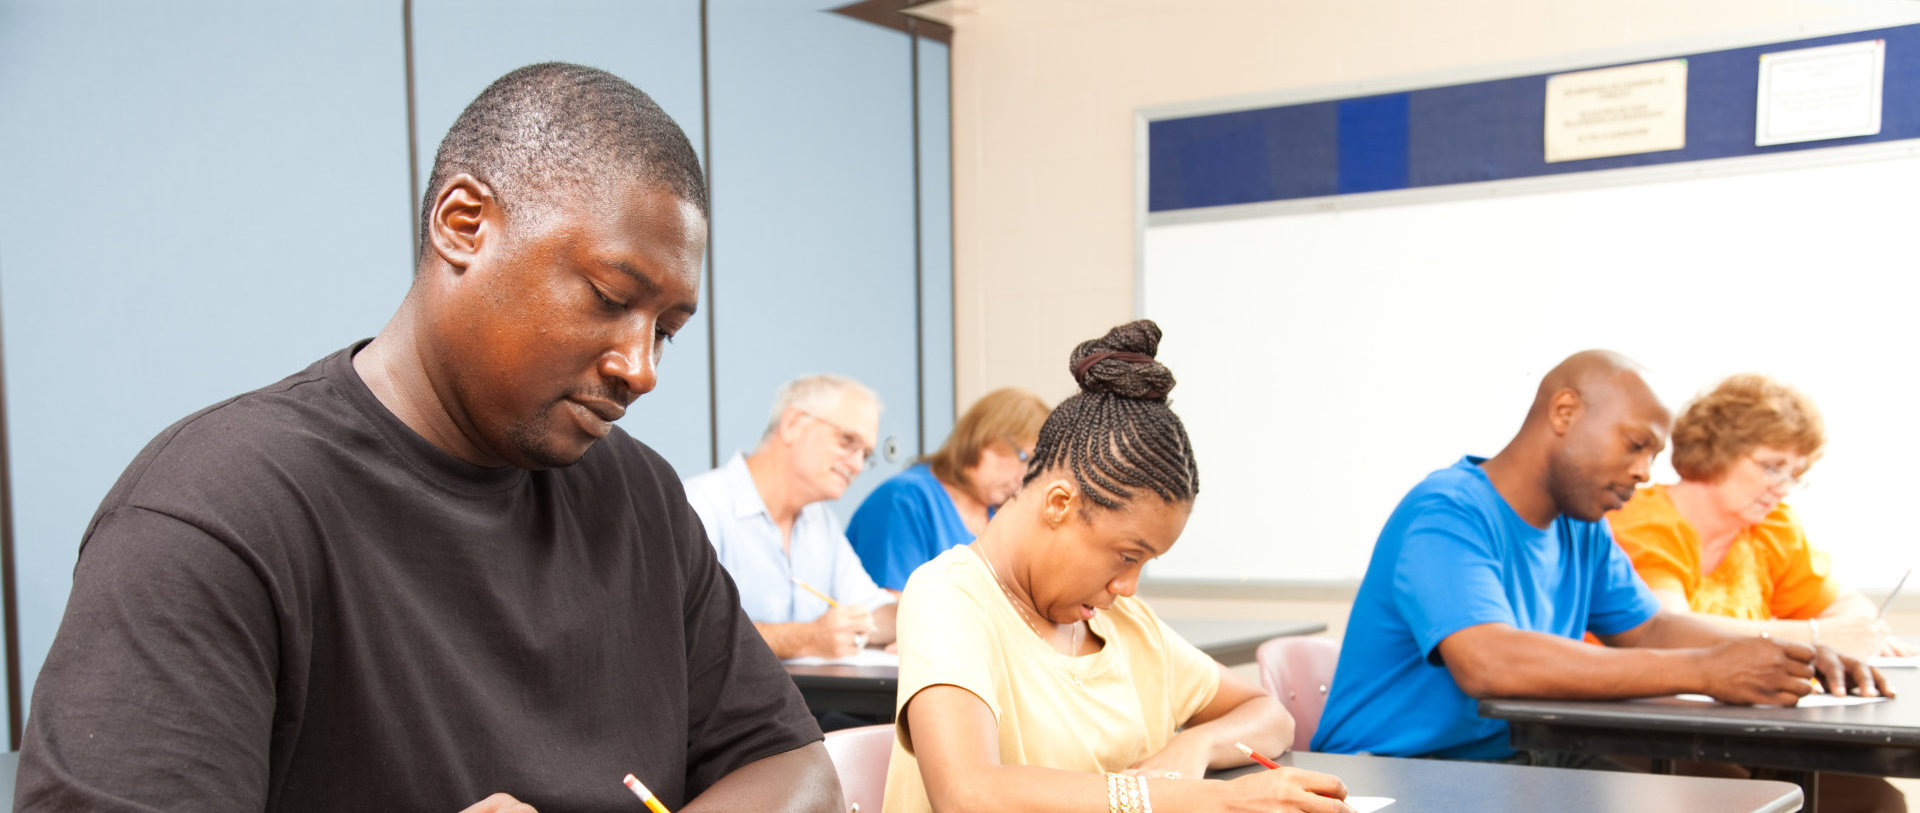 Class of adult college students taking a test